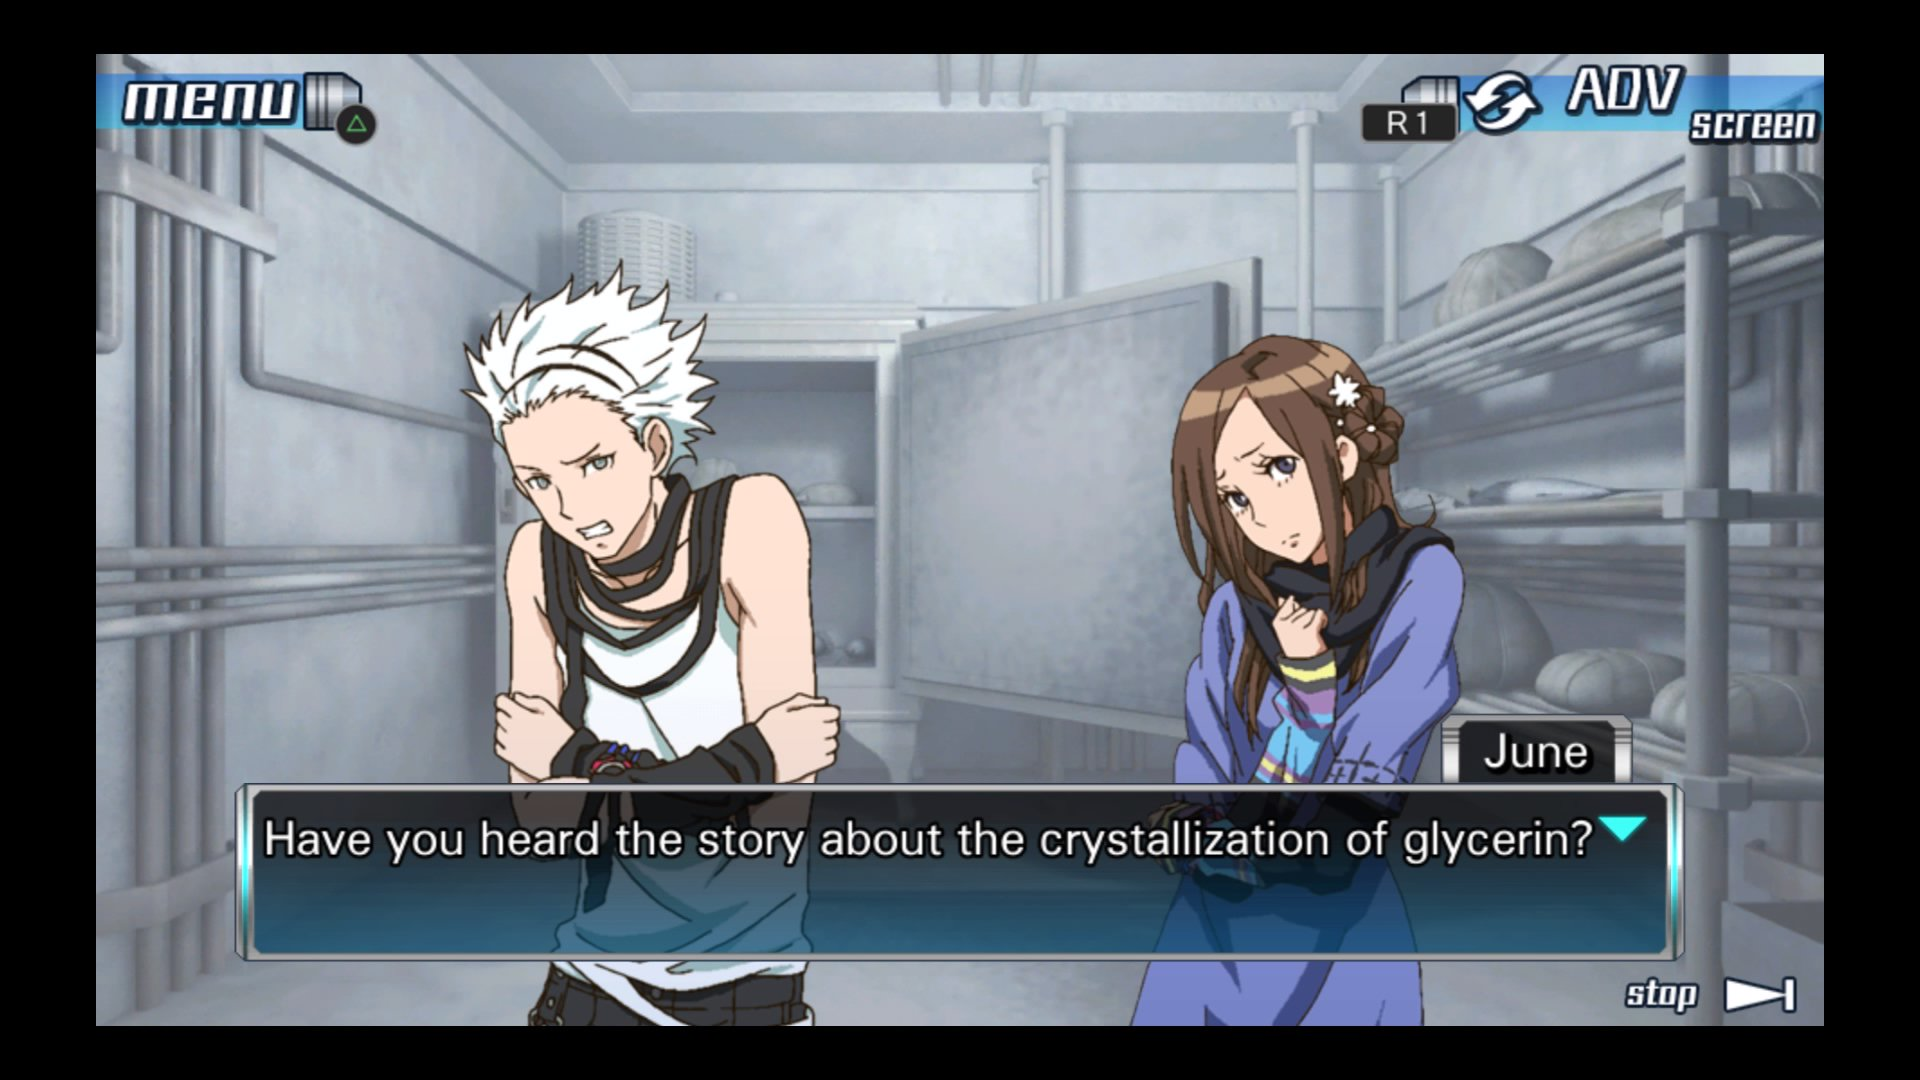 A visual-novel screenshot showing two anime-style characters, a young man and a young woman, standing in a walk-in freezer. The man is hugging himself against the cold. The woman looks pensive. A text box under them, labeled 'June', says: 'Have you heard the story about the crystallization of glycerin?'